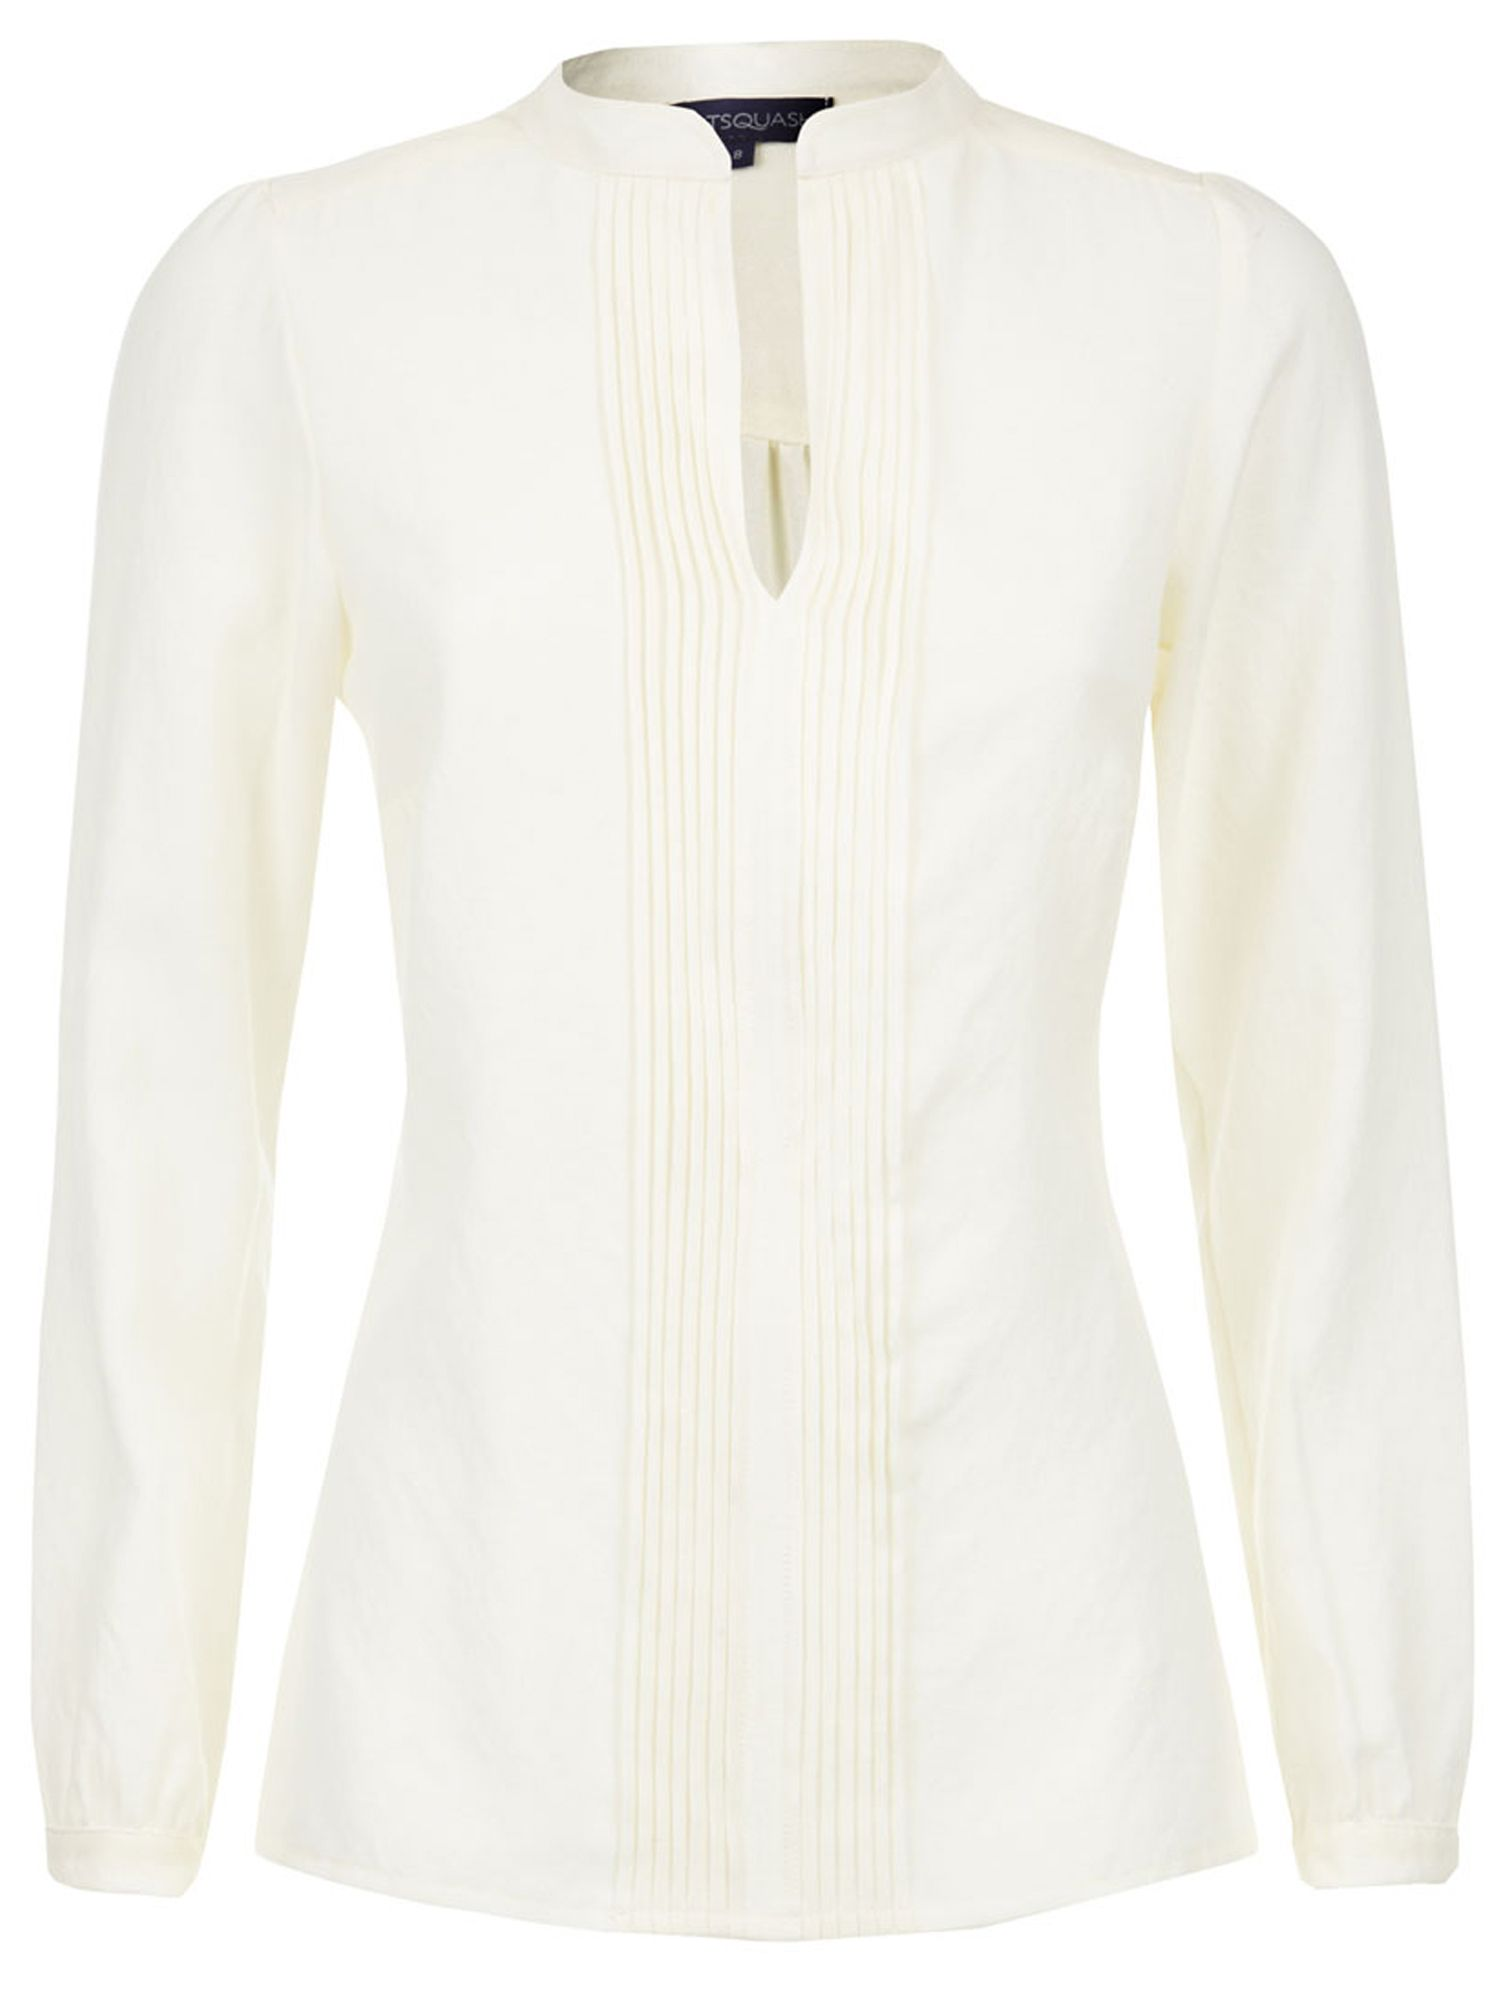 HotSquash Pleat blouse in clever fabric, Cream